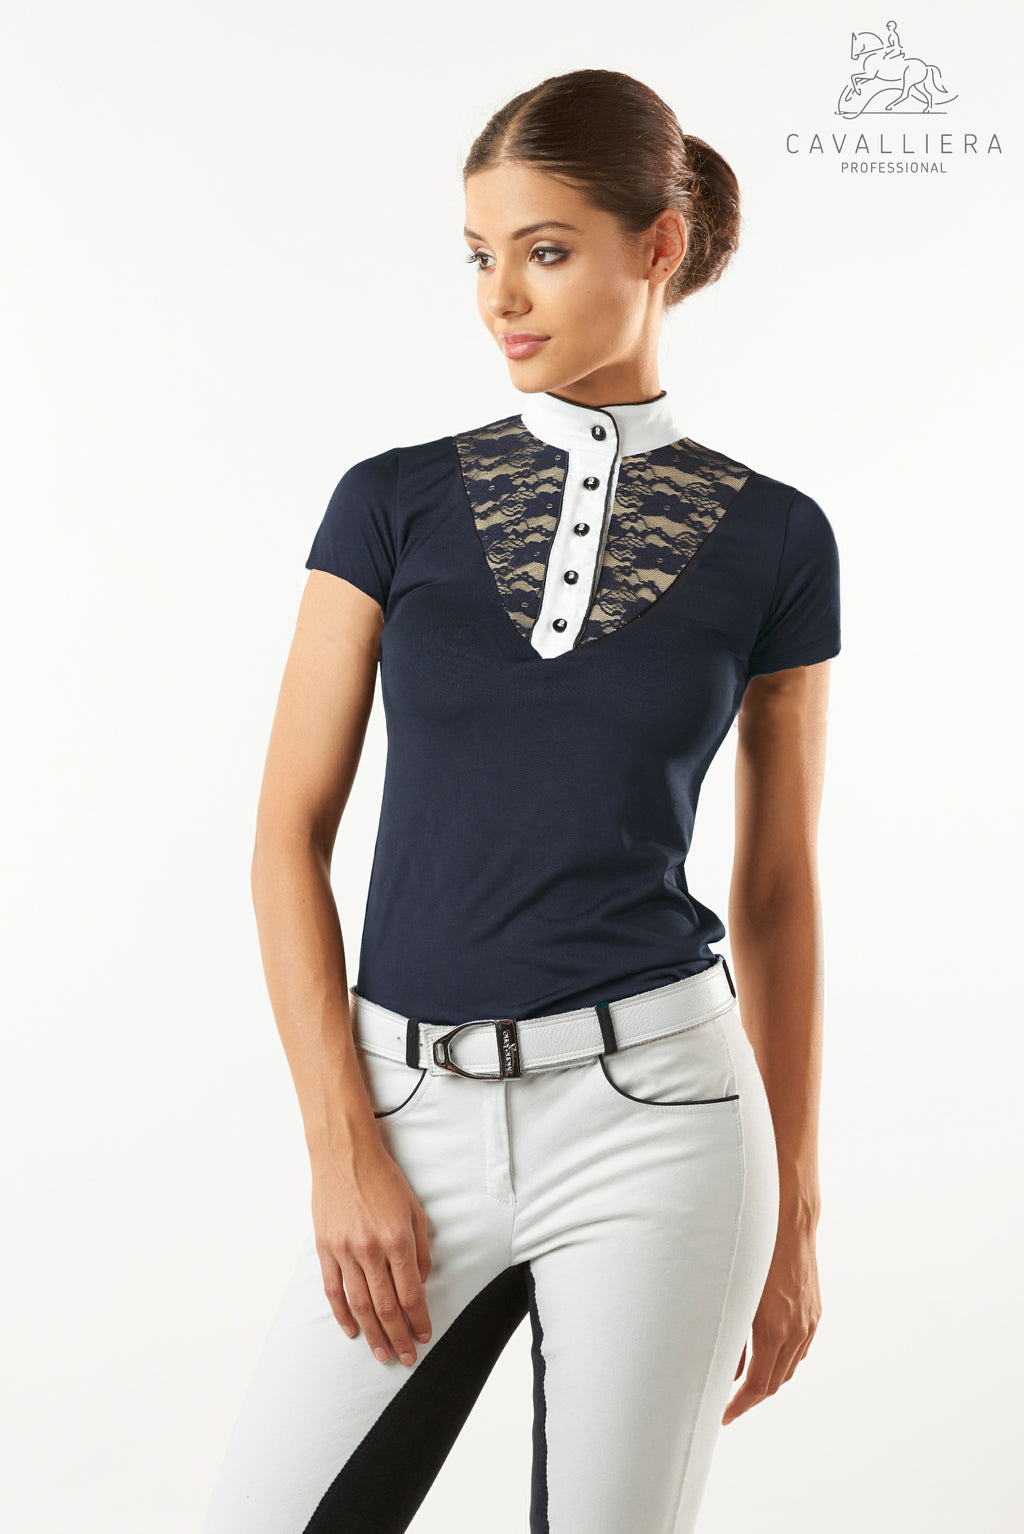 Cavalliera Lace Chic Technical Short Sleeve Shirt